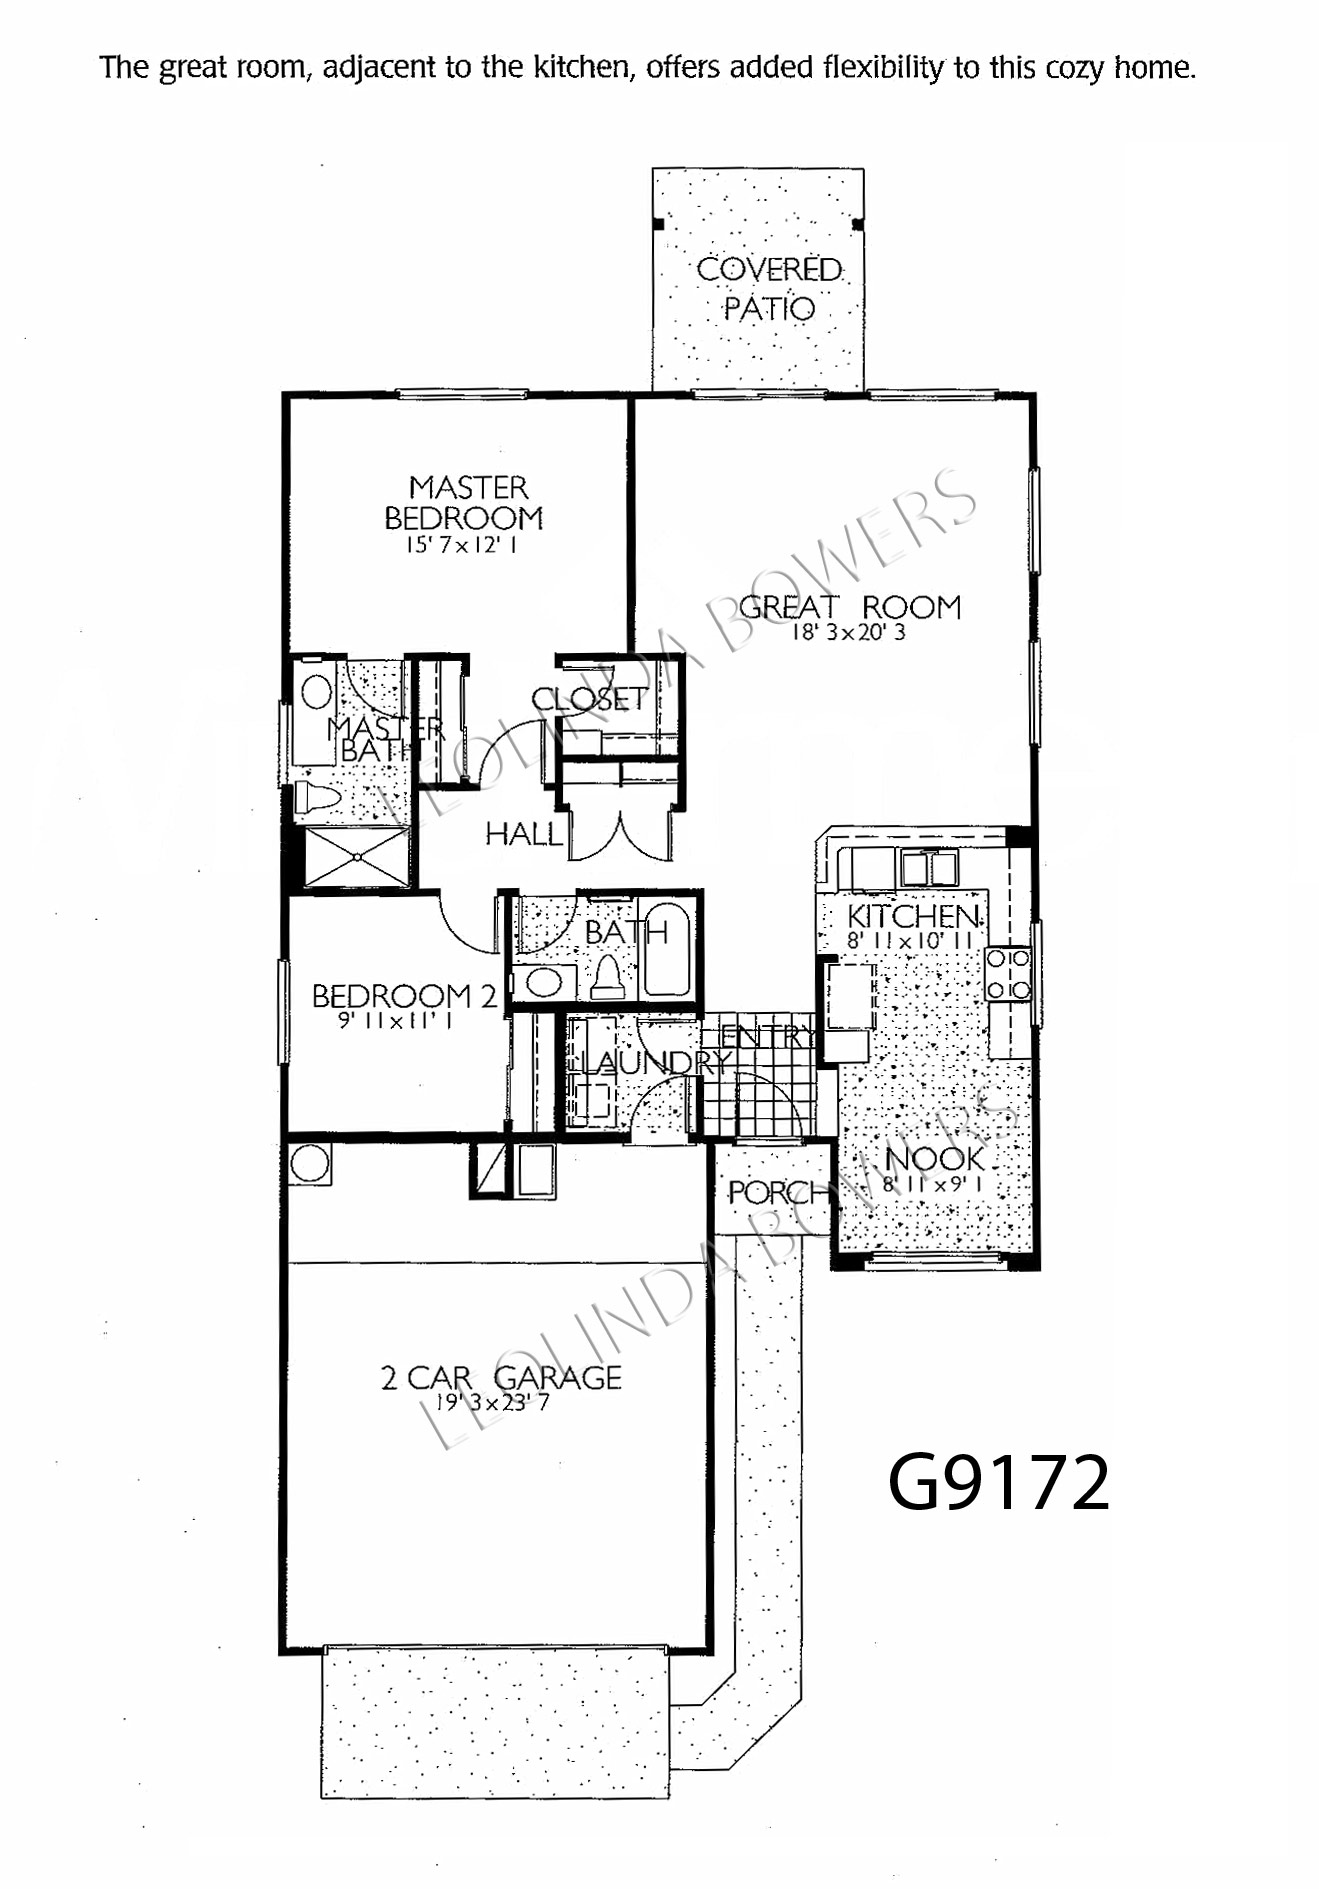 Find Sun City Grand Sage floor plans – Leolinda Bowers Realtor